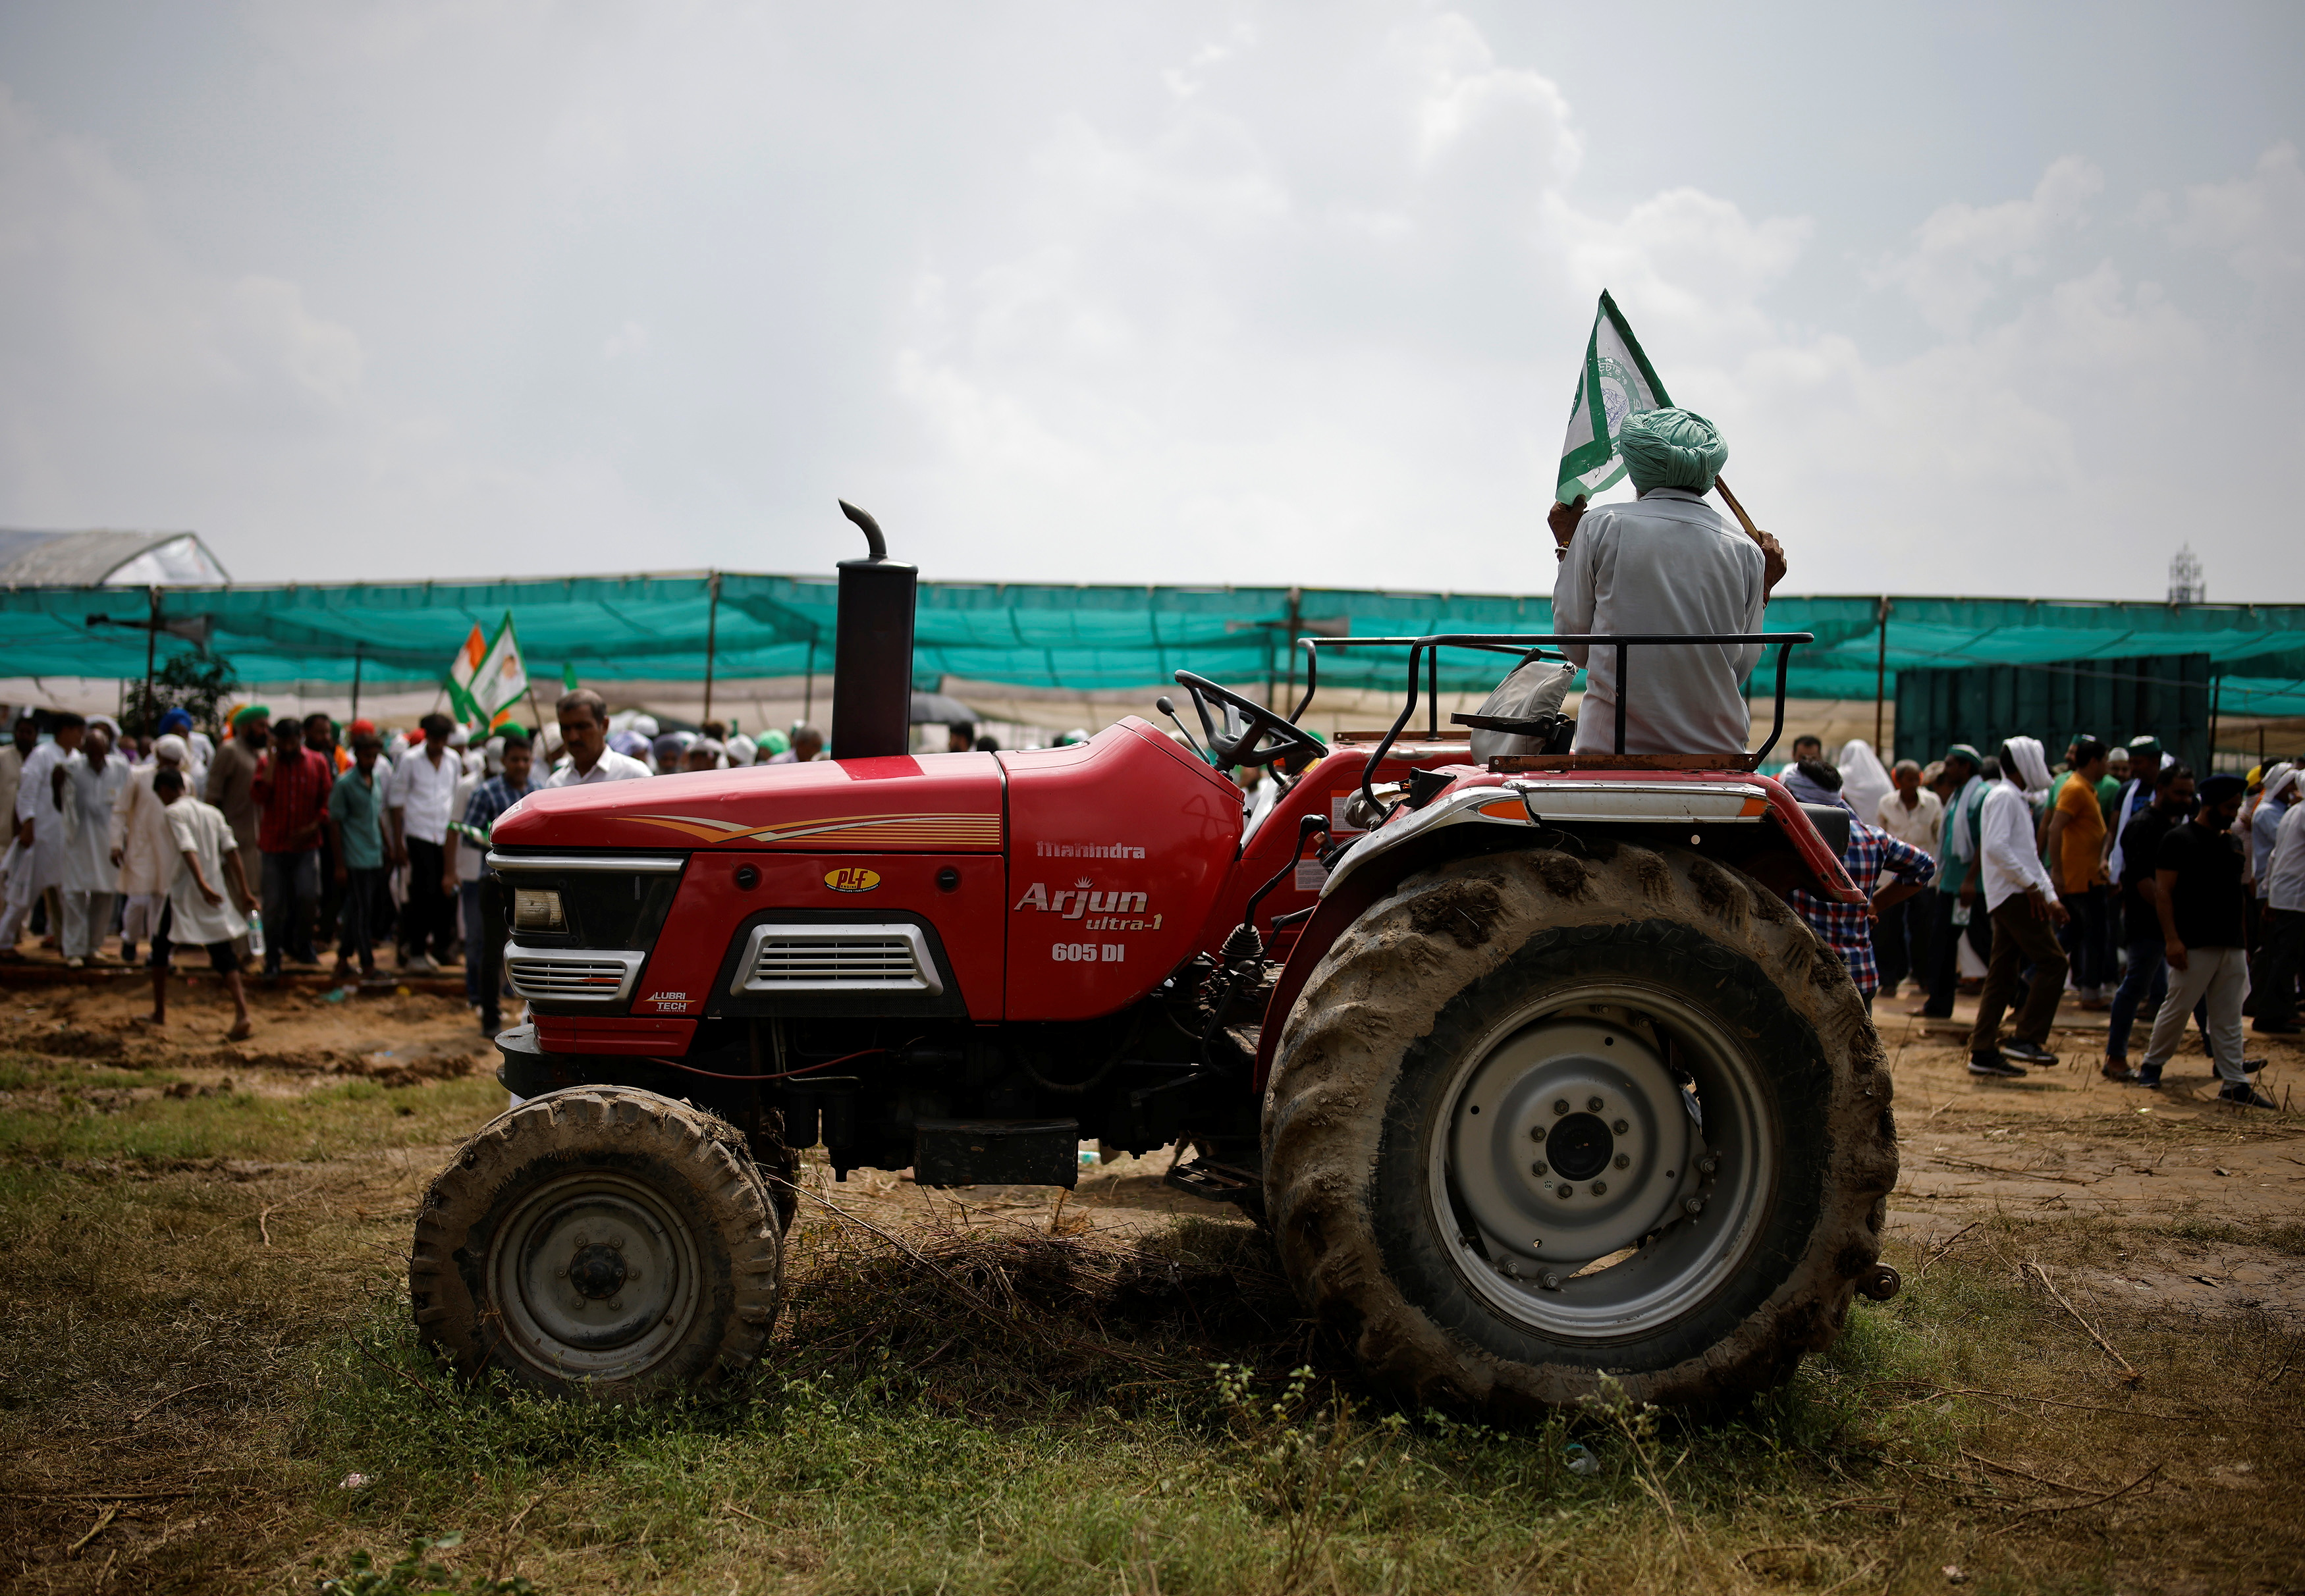 A farmer sits on a tractor as he attends a Maha Panchayat or grand village council meeting as part of a protest against farm laws in Muzaffarnagar in the northern state of Uttar Pradesh, India, September 5, 2021. REUTERS/Adnan Abidi